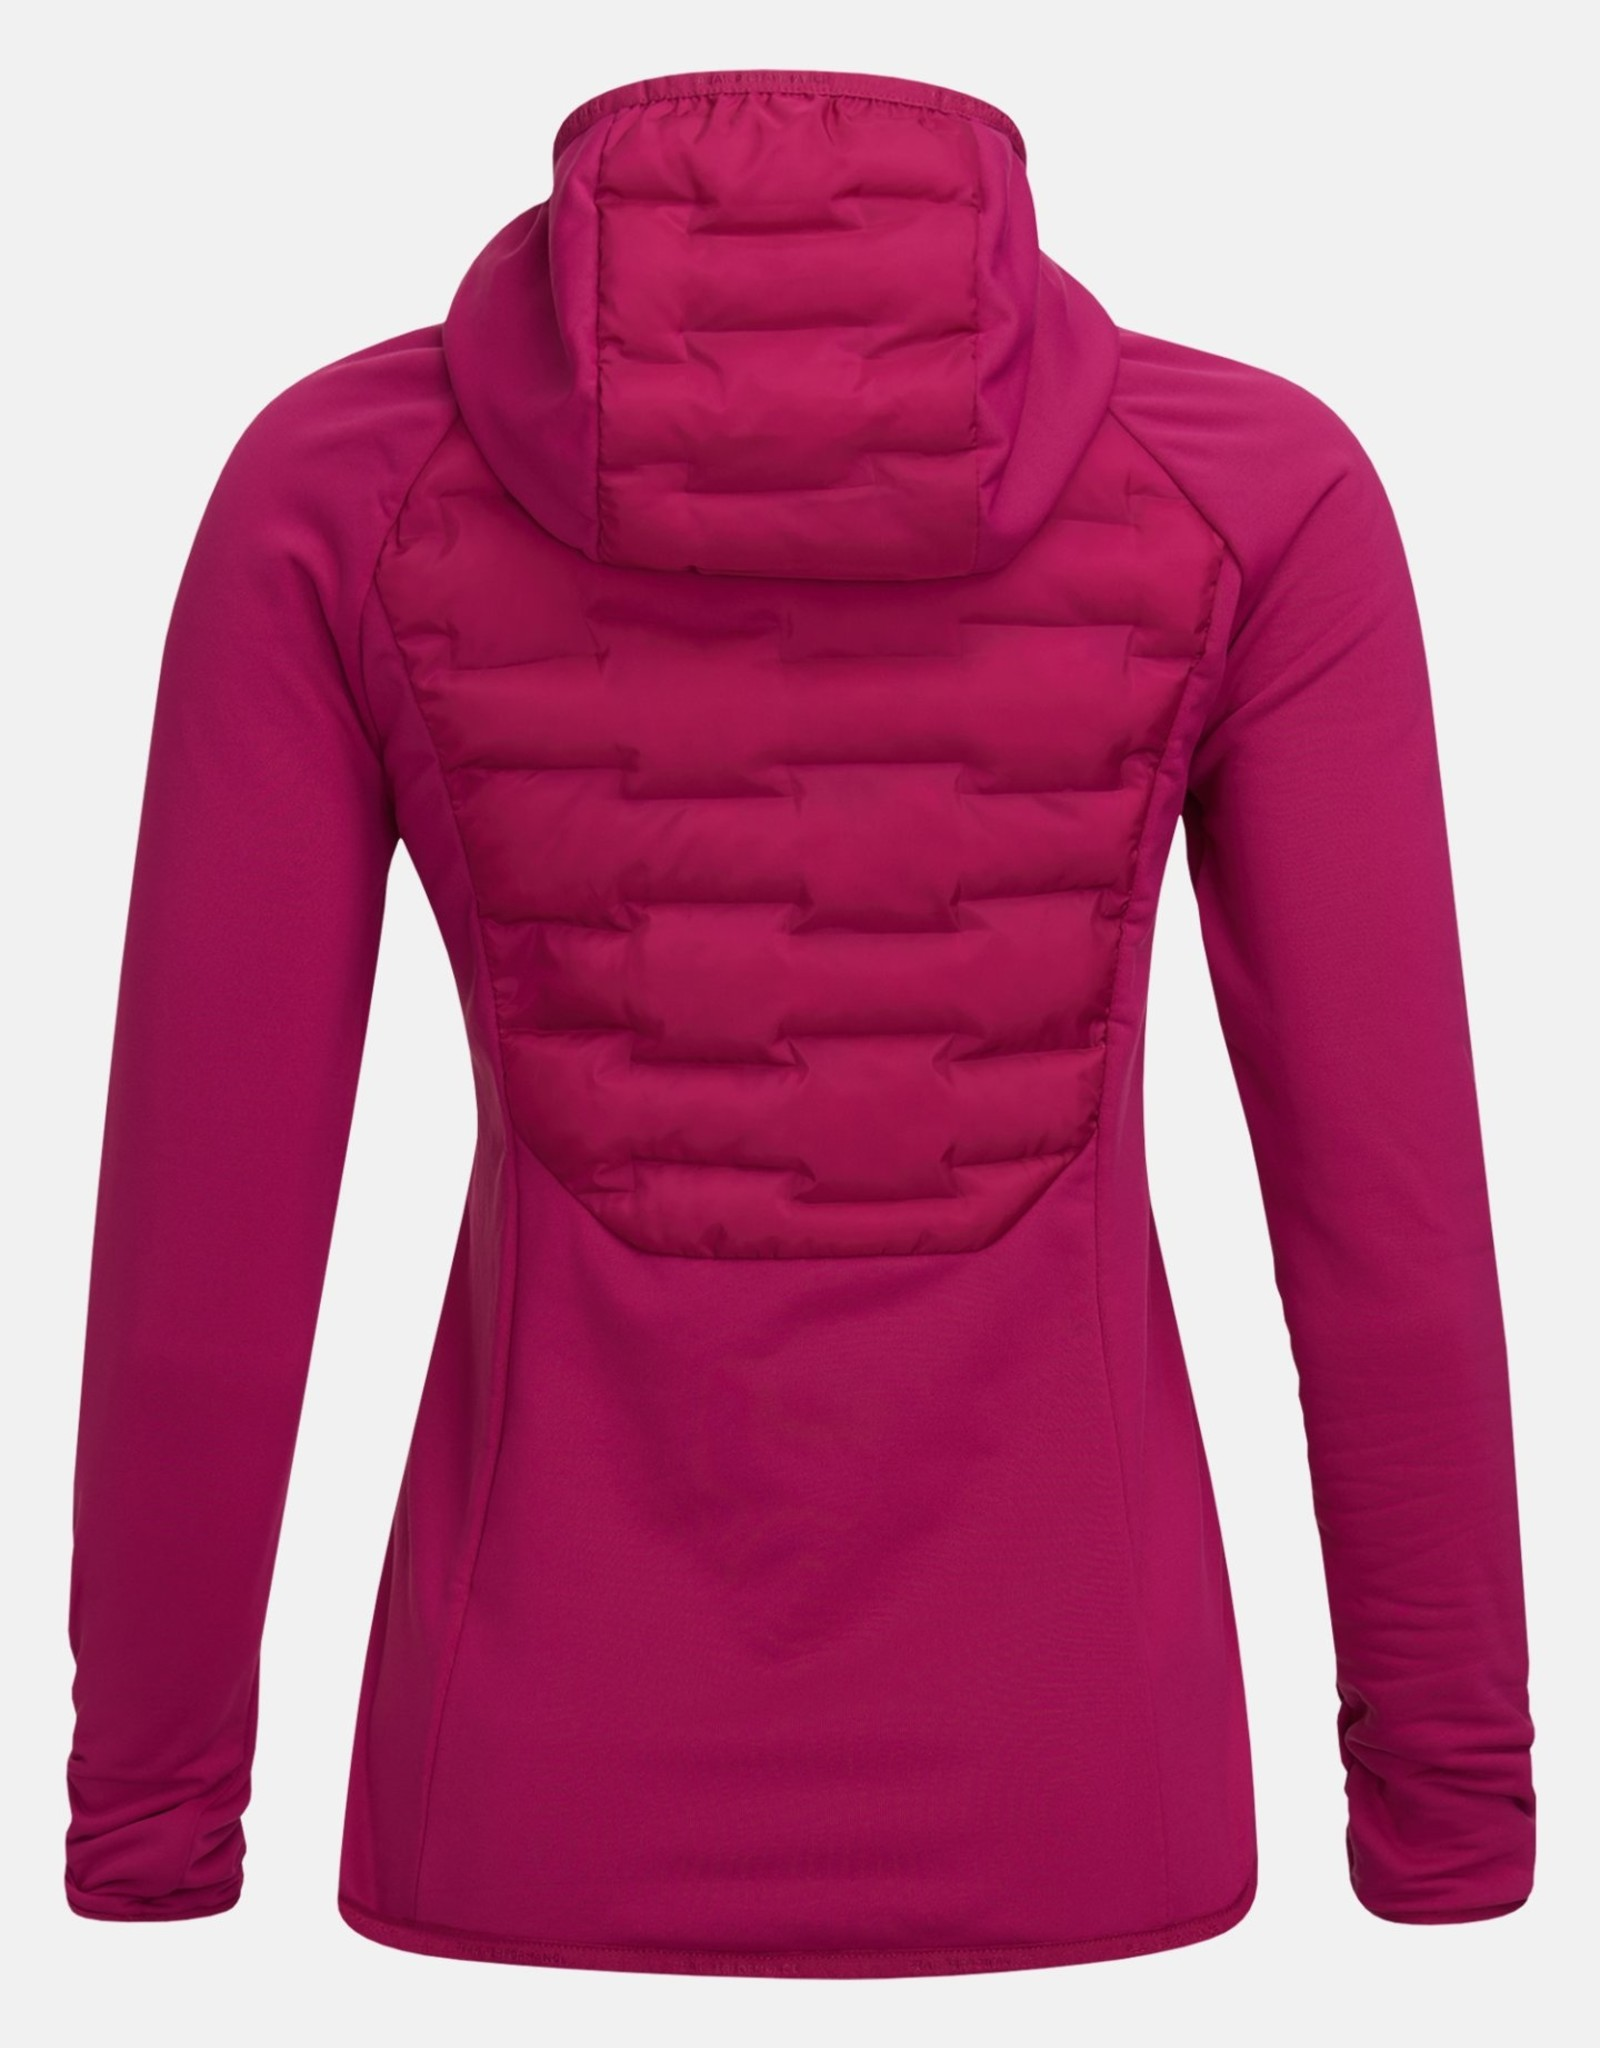 Peak Performance PEAK PERFORMANCE WOMEN'S ARGON HYBRID JACKET - S2020